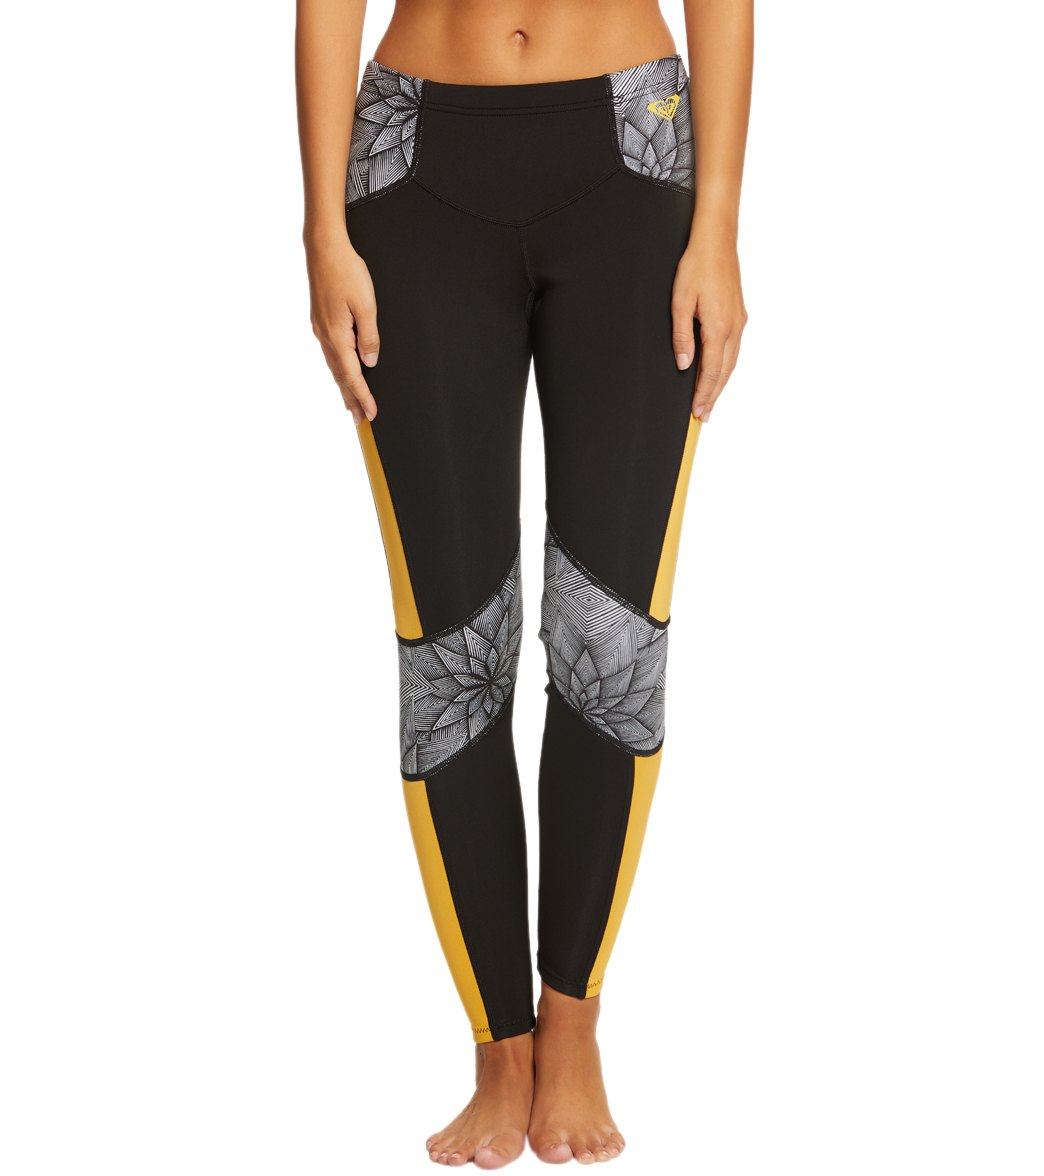 d82a4cf8998082 Roxy Women's 1MM Pop Surf Scallop Surf Leggings at SwimOutlet.com - Free  Shipping